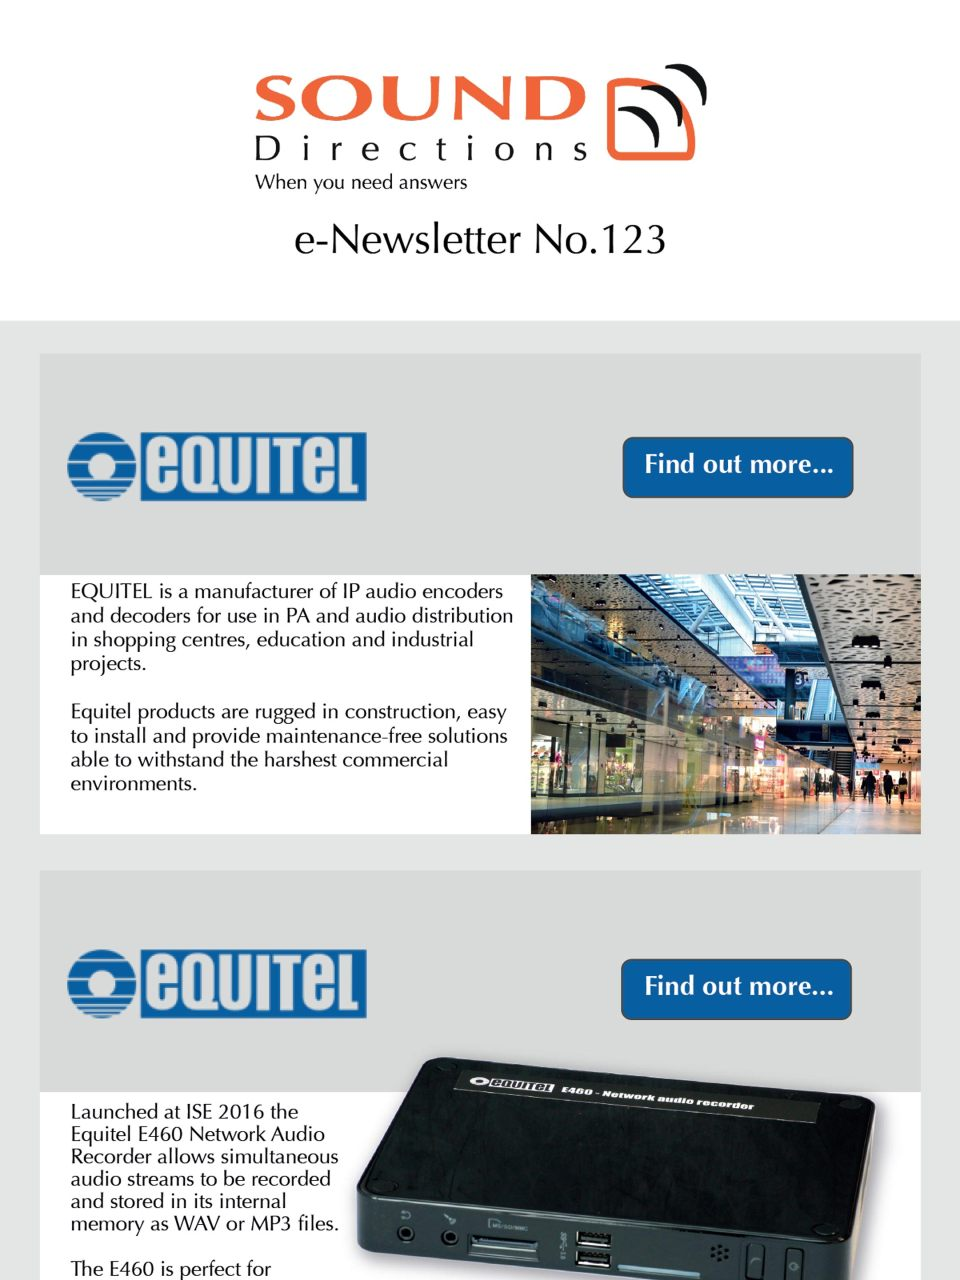 Sound-Directions-e-Newsletter-No.123-Image